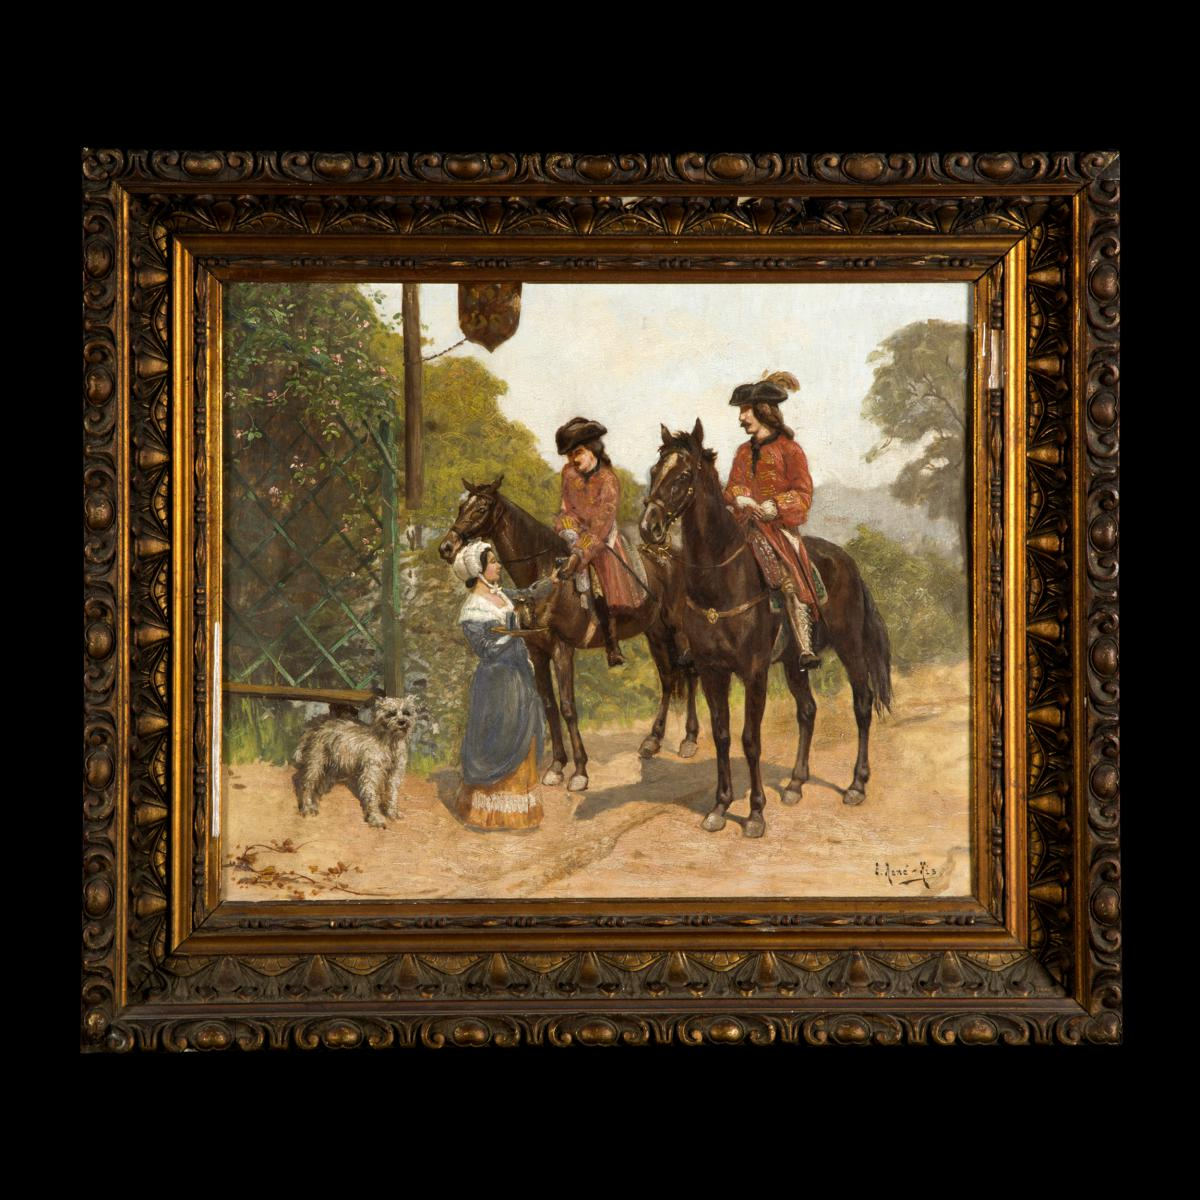 Charles Edmond René His (1877 - 1960), Soldats à Cheval